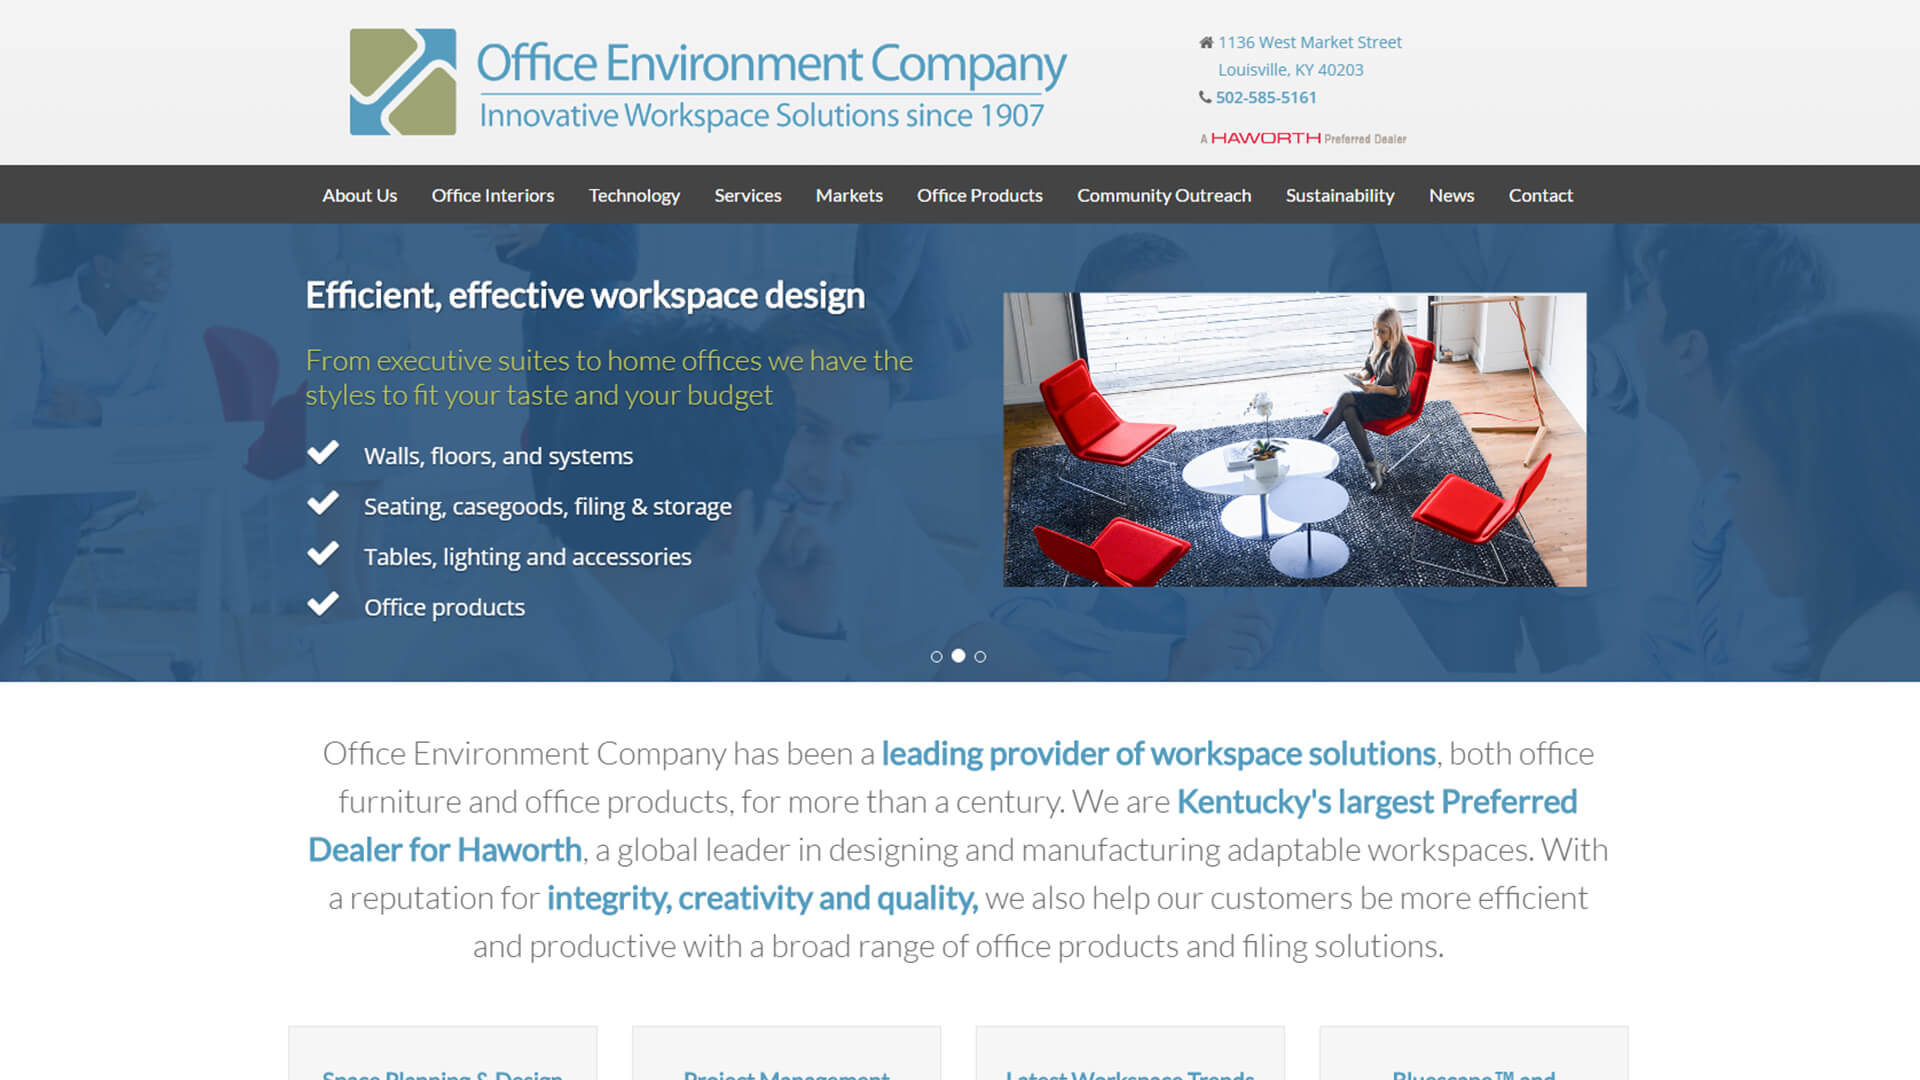 Office Environment Company